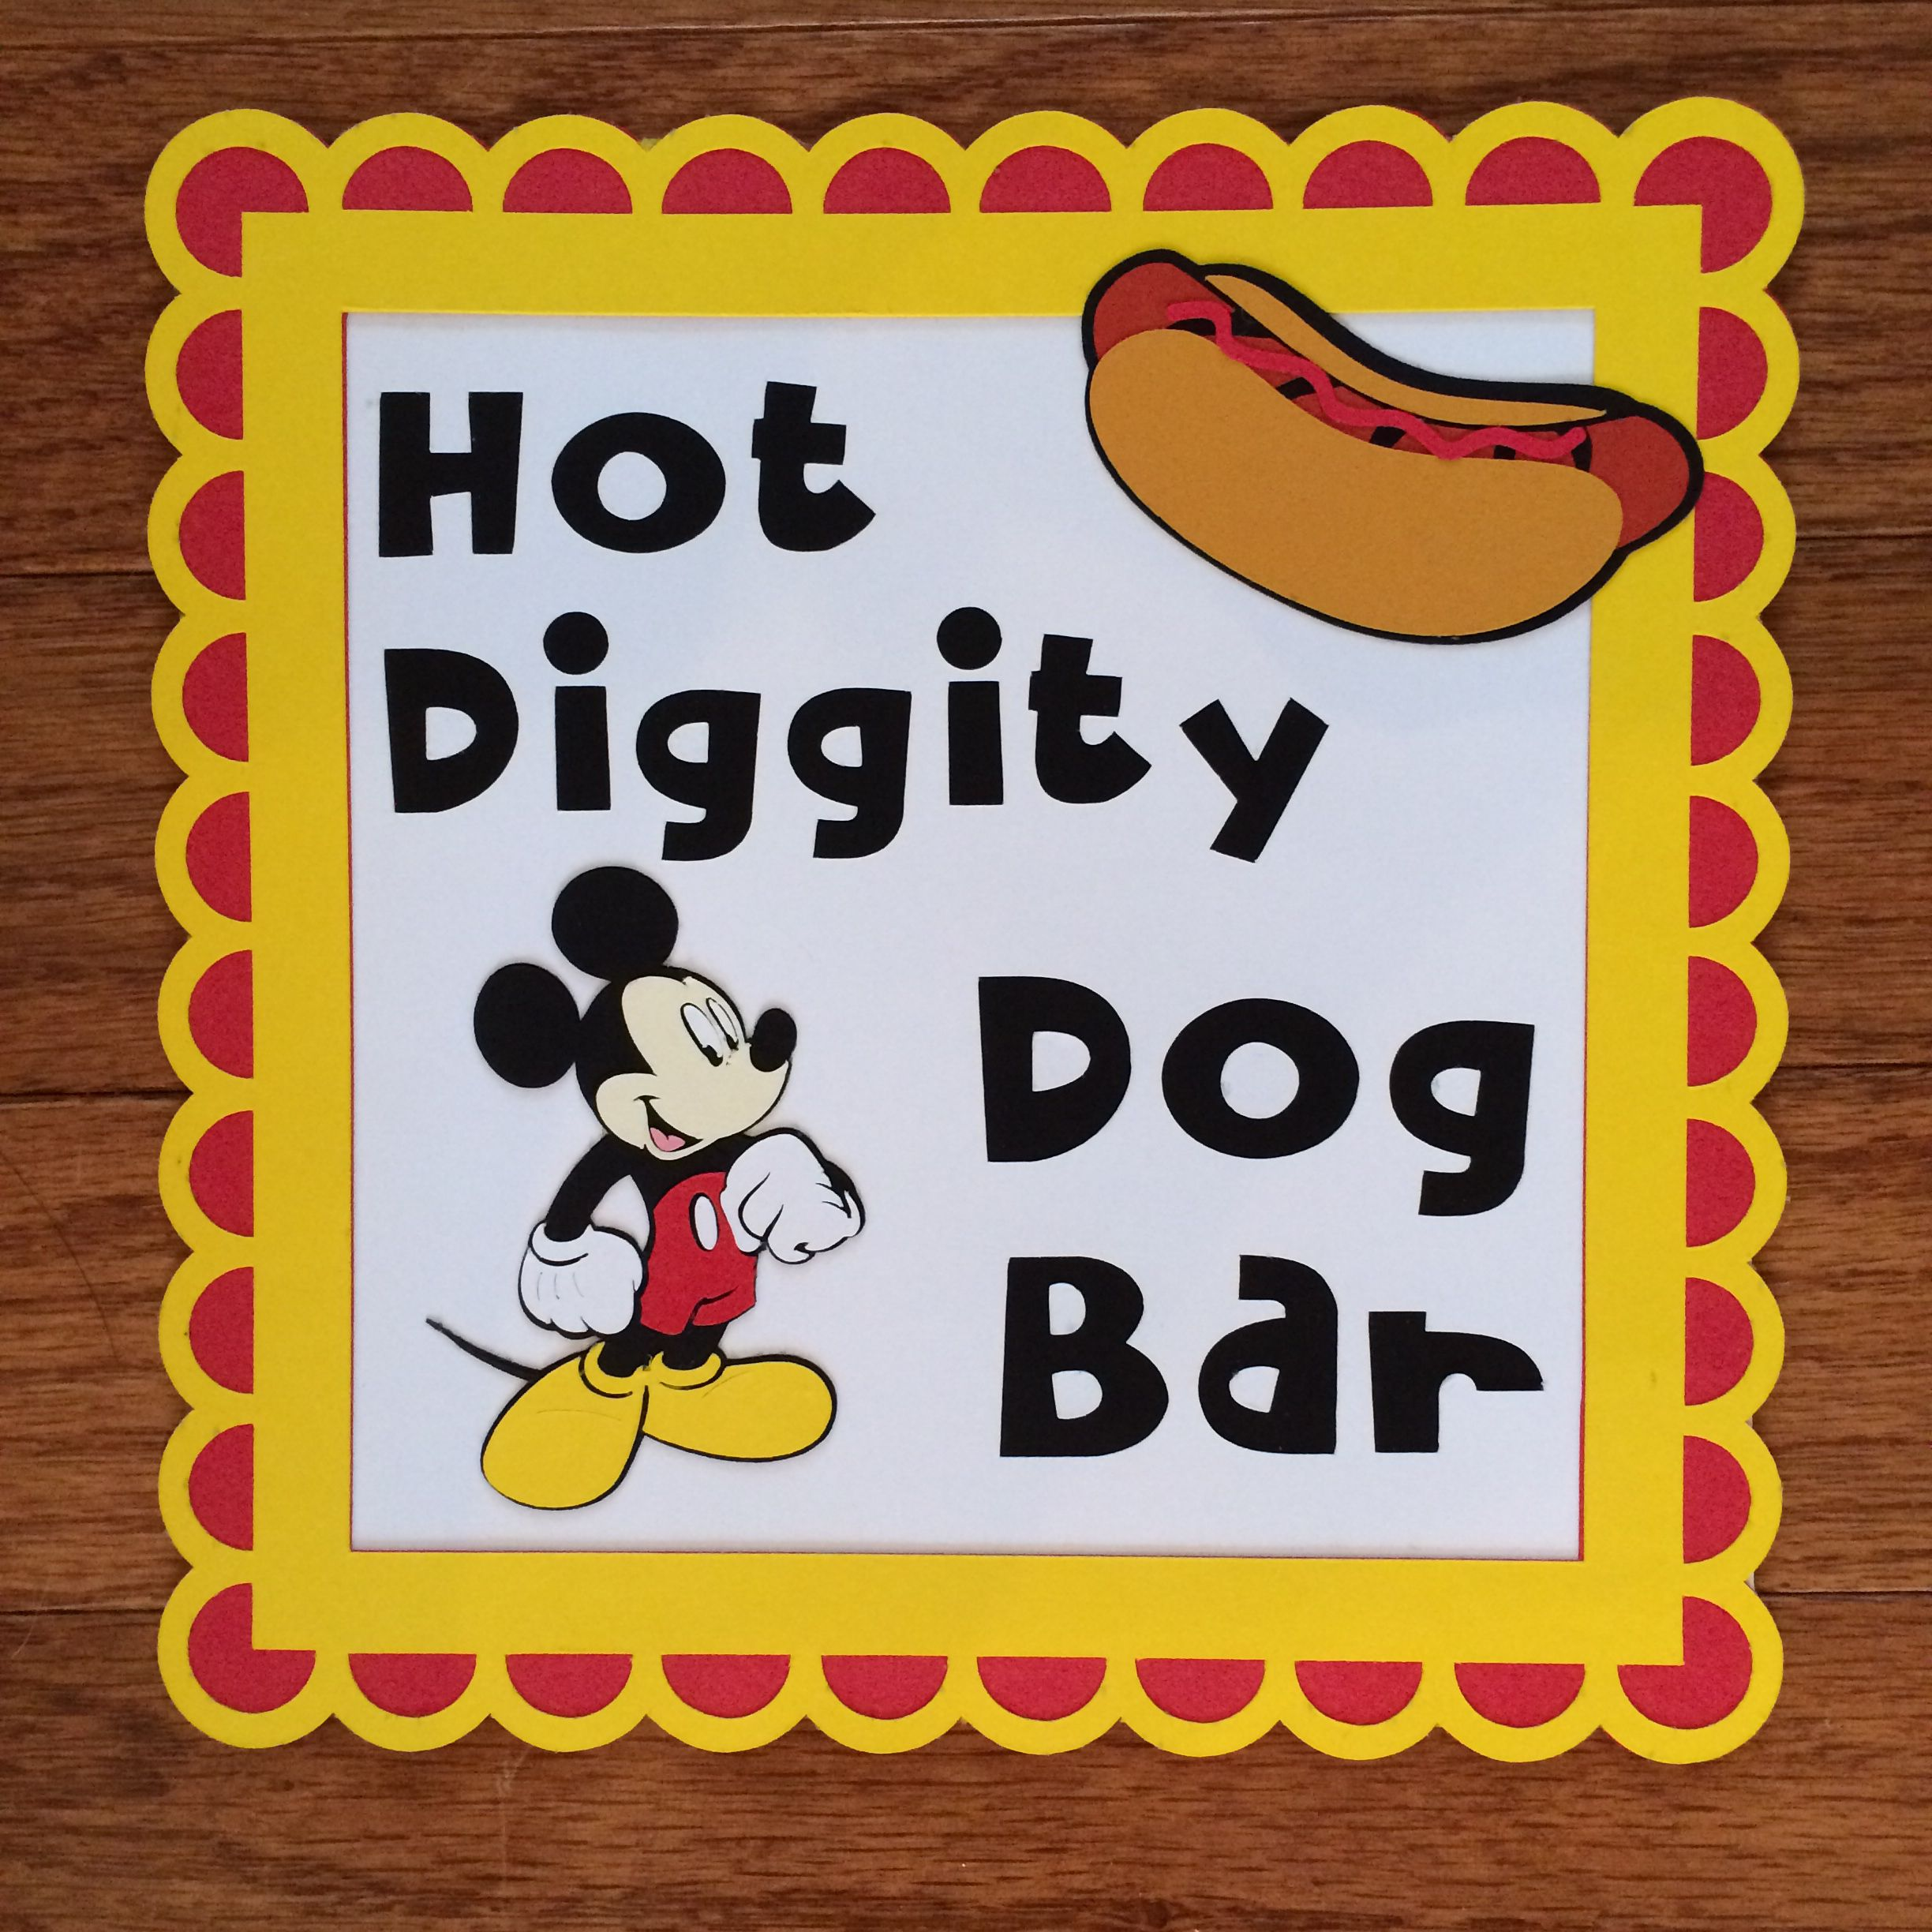 Mickey Mouse party hot diggity dog bar sign by Creative